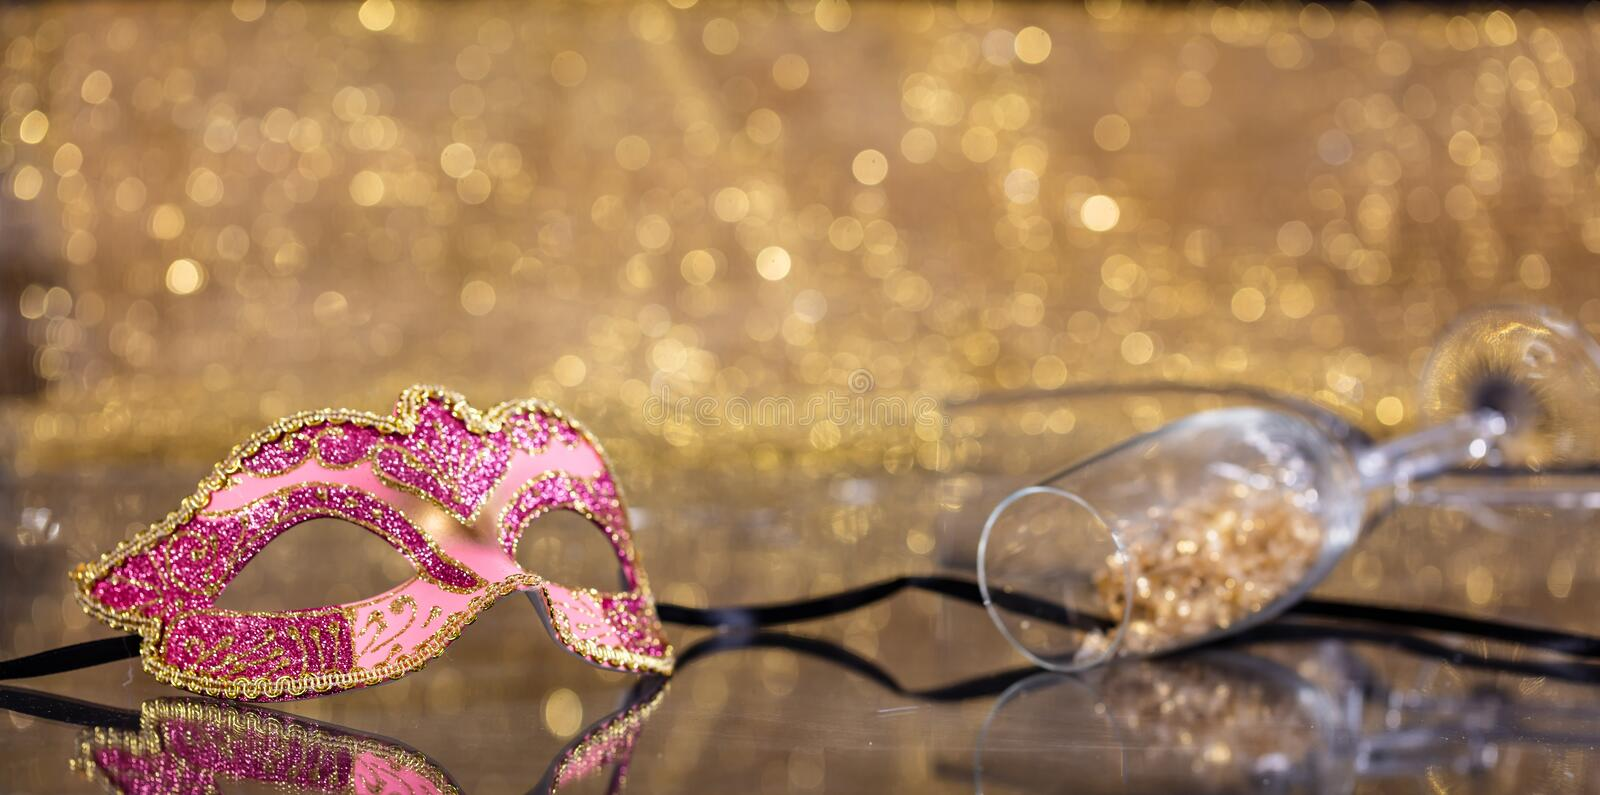 Carnival mask on golden bokeh background, copy space. Carnival party. Venetian mask and champagne glasses on golden bokeh background, reflections, copy space stock photos